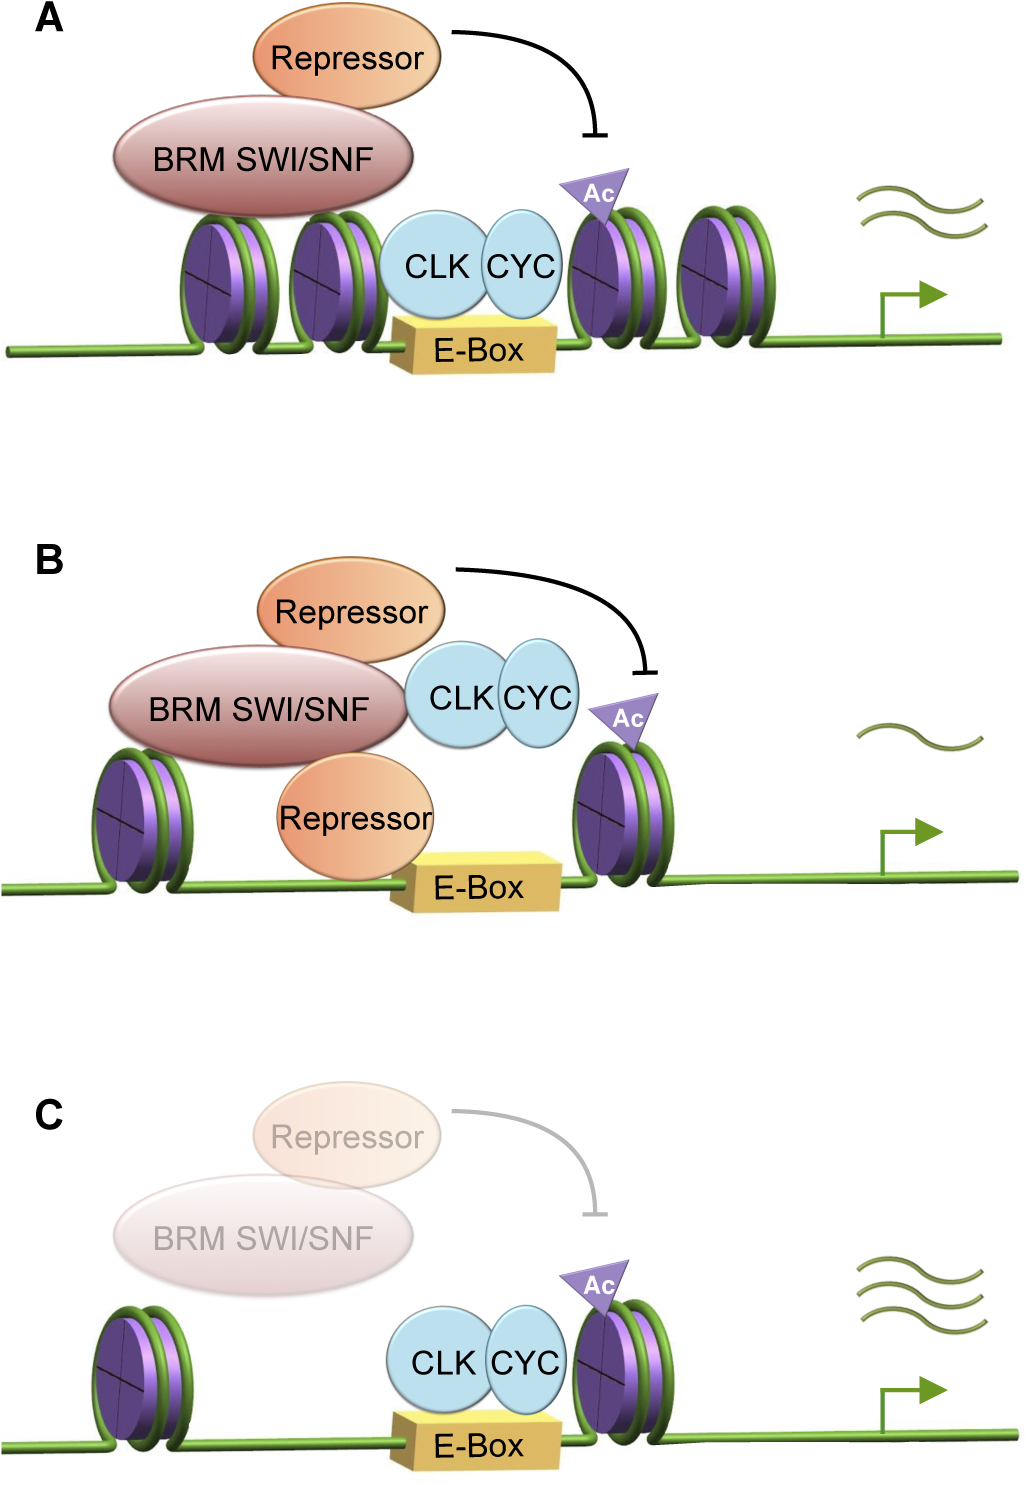 BRM exhibits both catalytic and non-catalytic roles in fine-tuning circadian transcription.